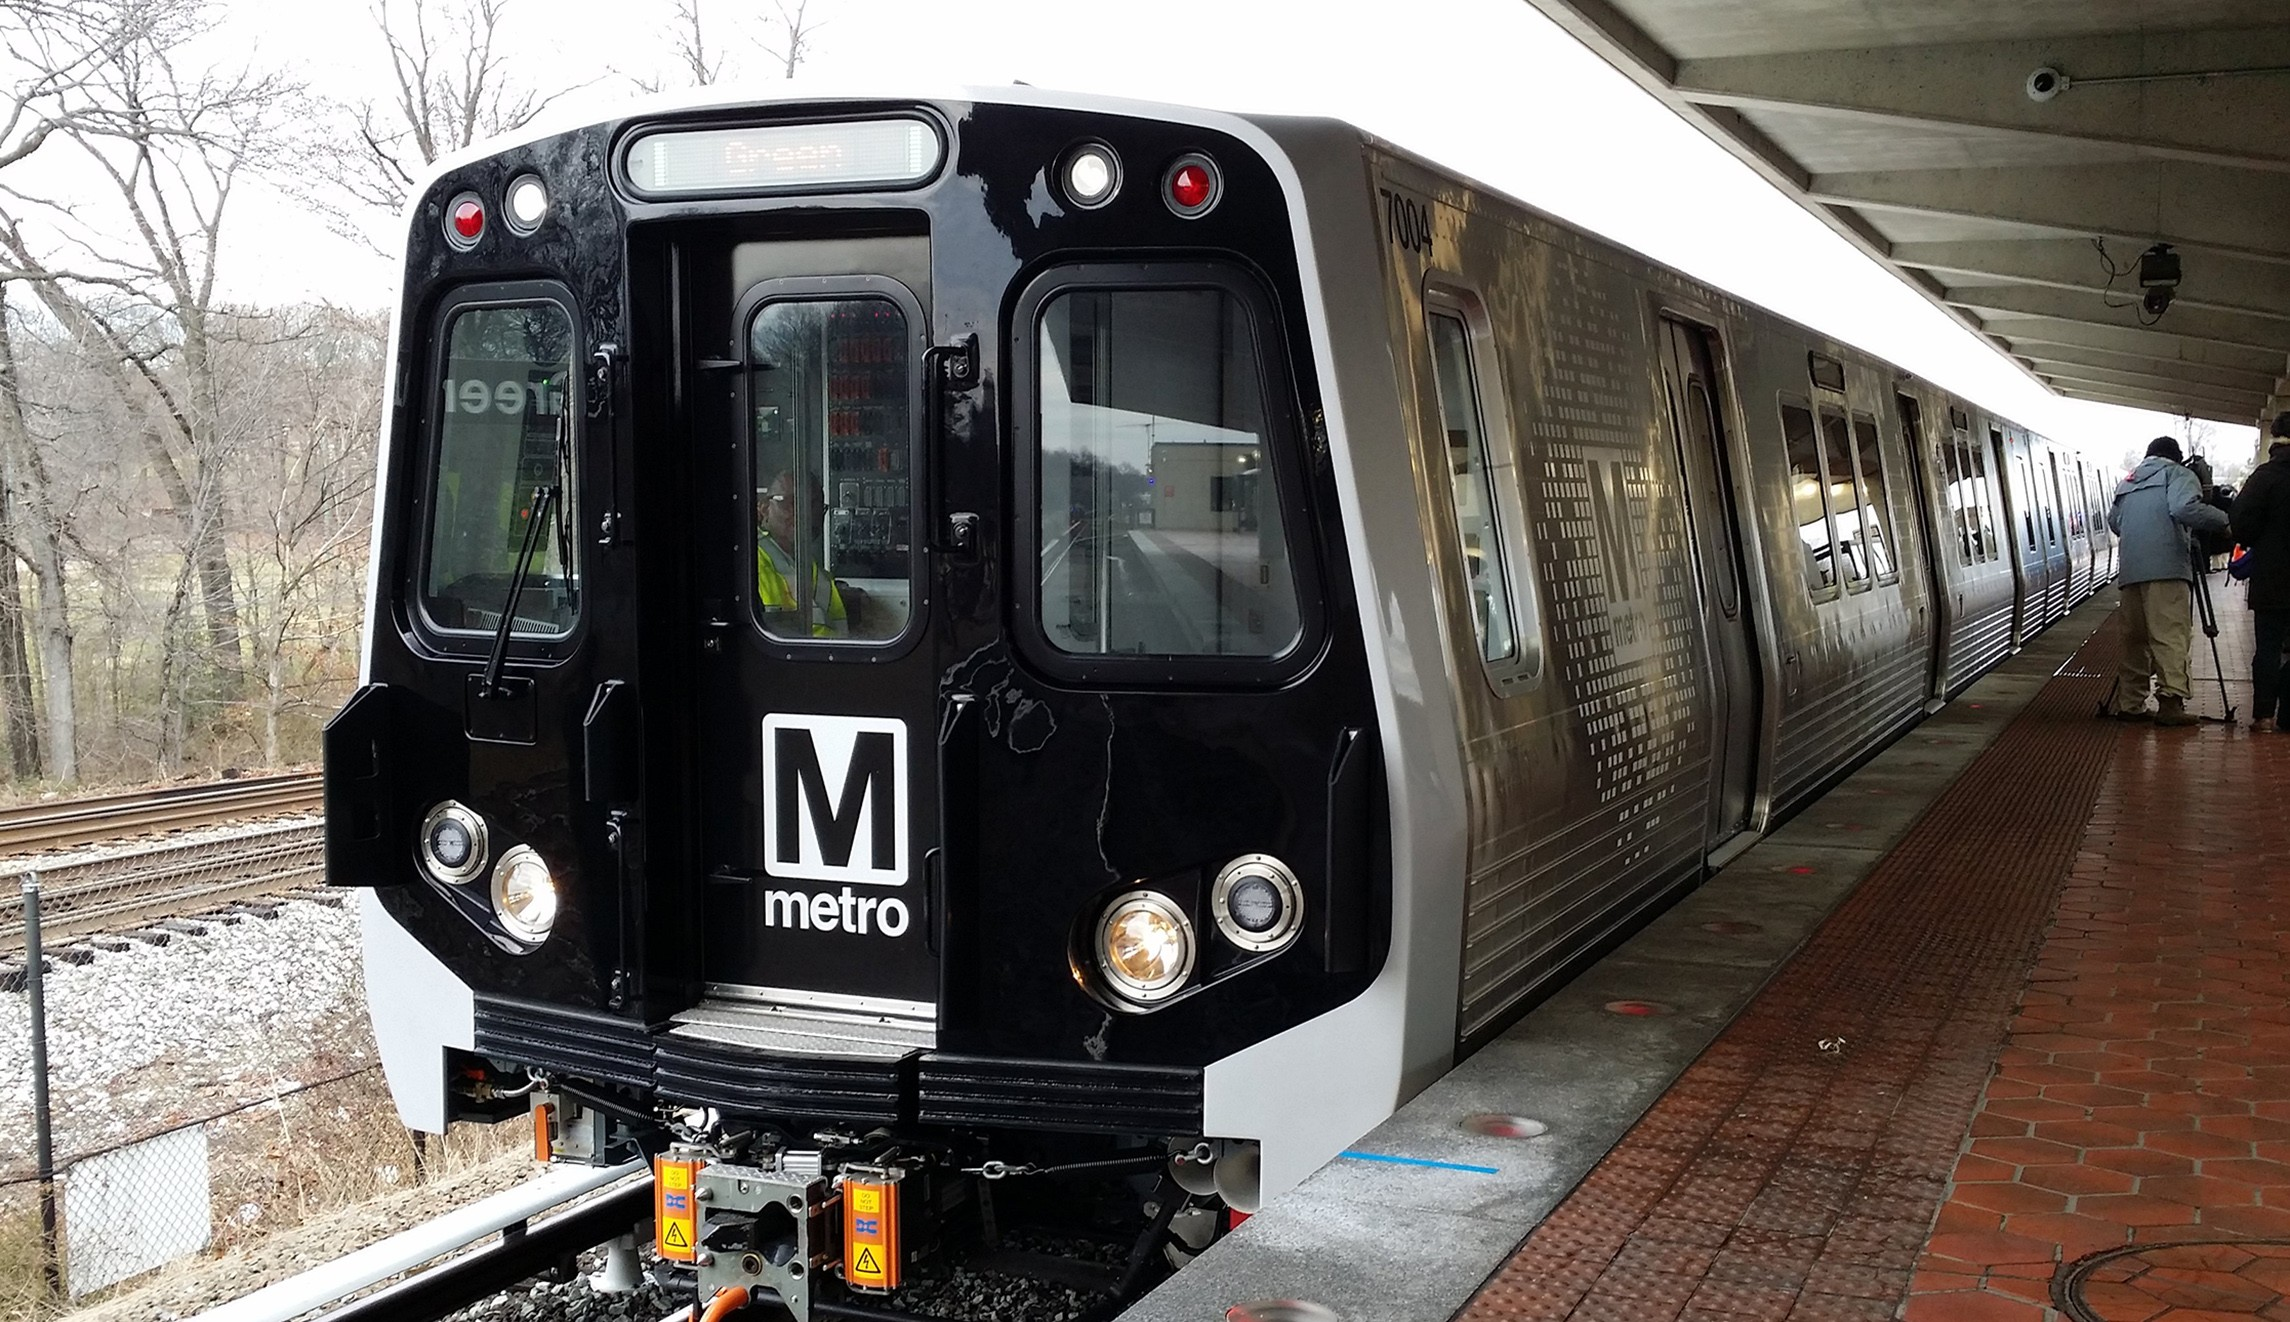 Metro is celebrating Earth Day with the announcement of its first-ever Energy Action Plan - a detailed roadmap to reduce energy usage, cut greenhouse gas emissions and generate up to $29 million annually in energy and operational cost savings.